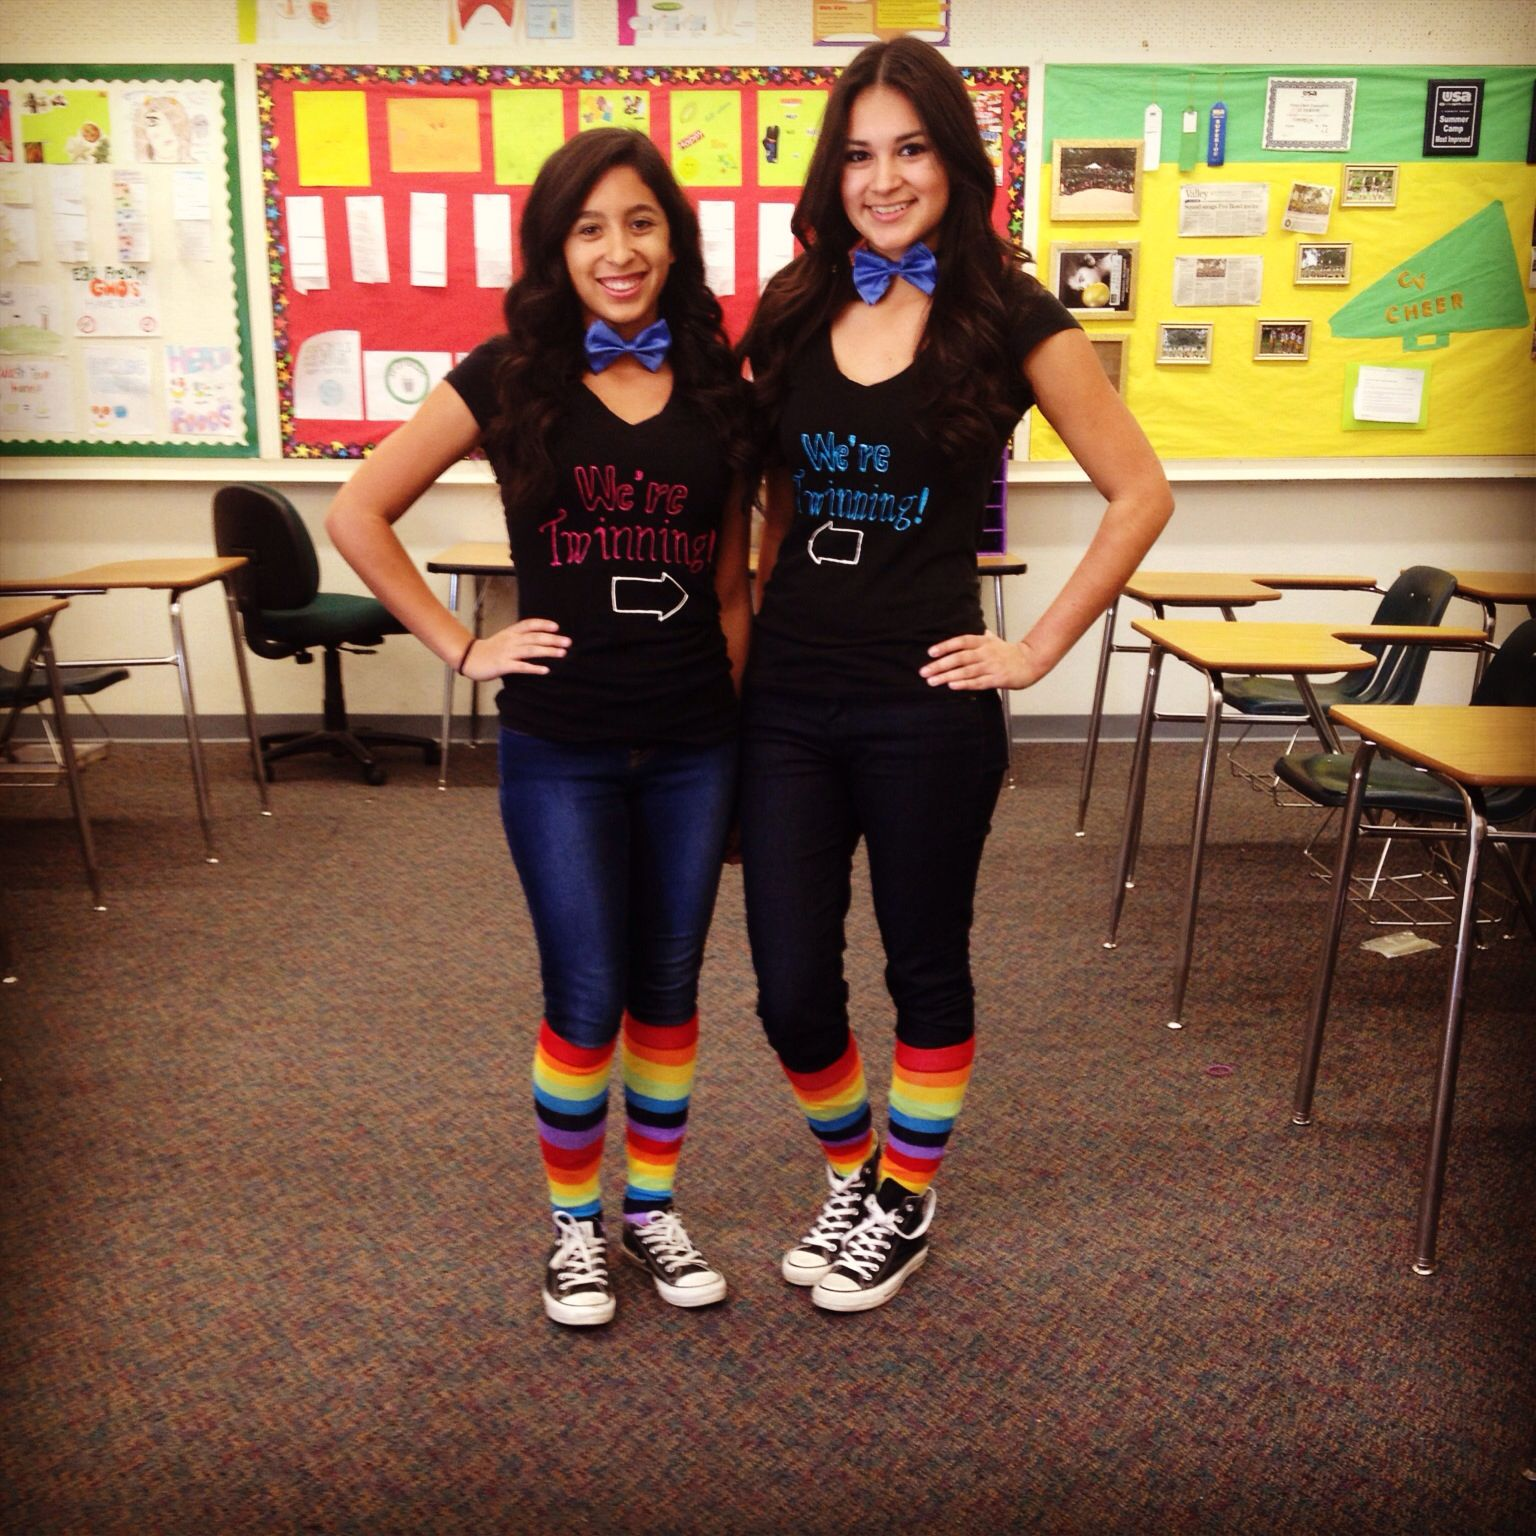 Unique Twin Day Ideas | Twin Day Shirt Ideas Twin day! diy pocket ...